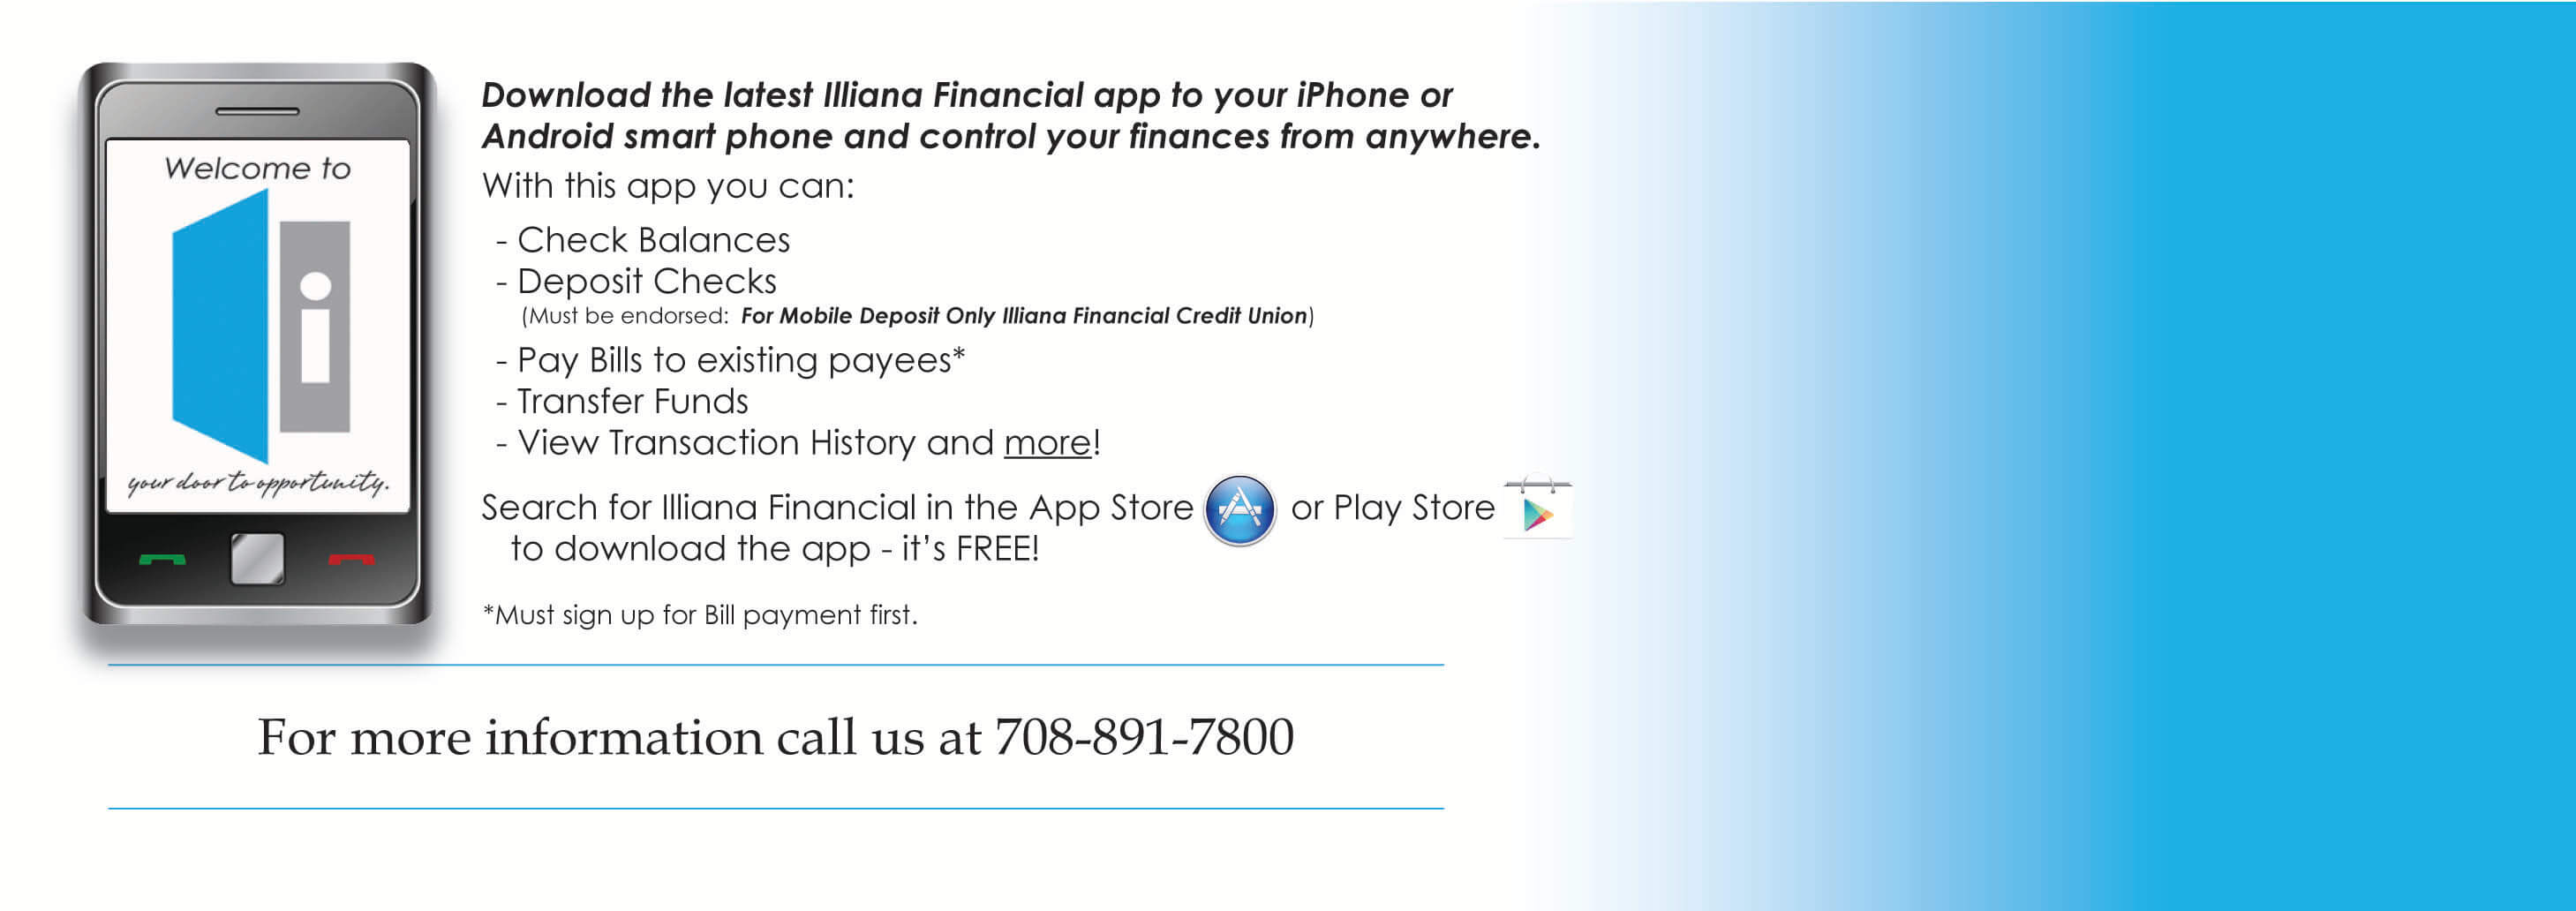 Download the latest Illiana Financial app to your iphone of Android smart phone and control your finances from anywhere.